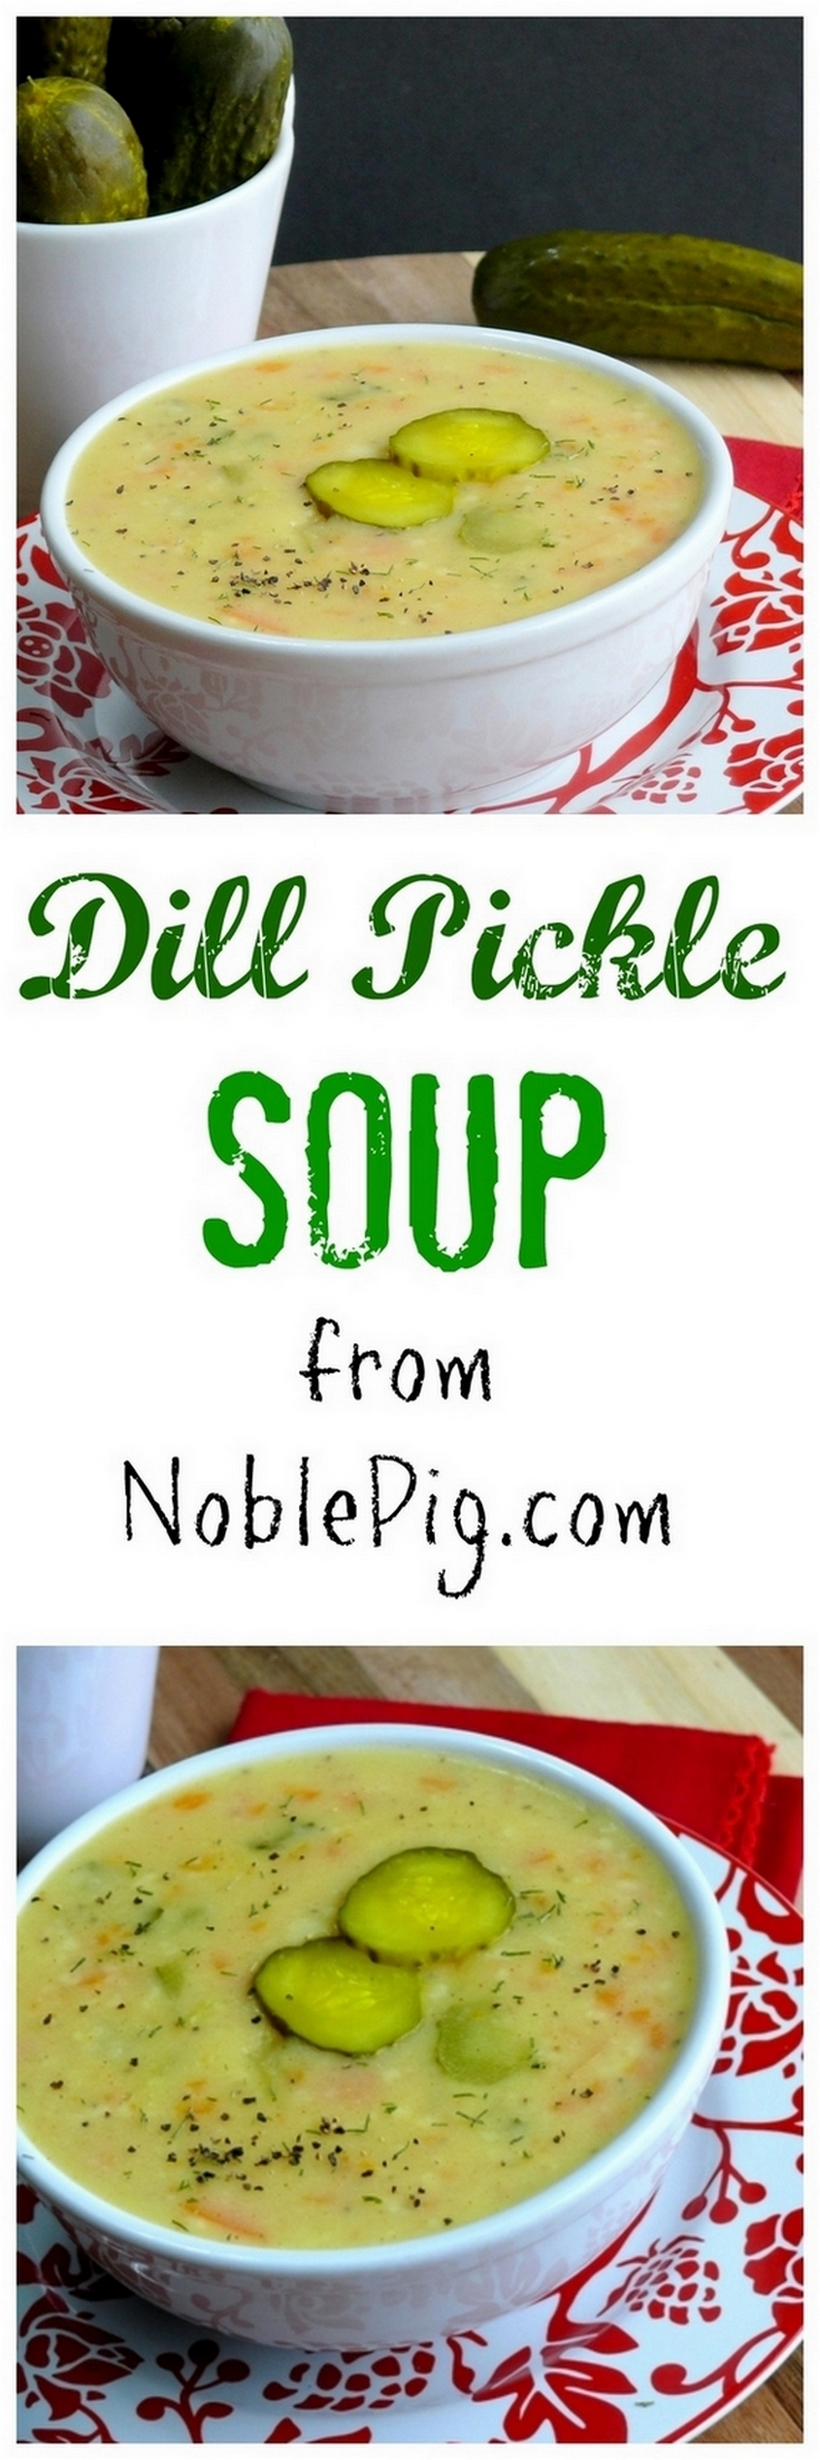 VIDEO + Recipe: Dill Pickle Soup has swept the nation and is exactly the Polish Dill Pickle Soup recipe you've been looking for. #noblepig #dillpicklesoup #polishdillpicklesoup #pickles #dill #soup #polishfood #polishfoodrecipes #polishrecipes #thebestdillpicklesoup #easydillpicklesoup #dillpickles #dillpickle